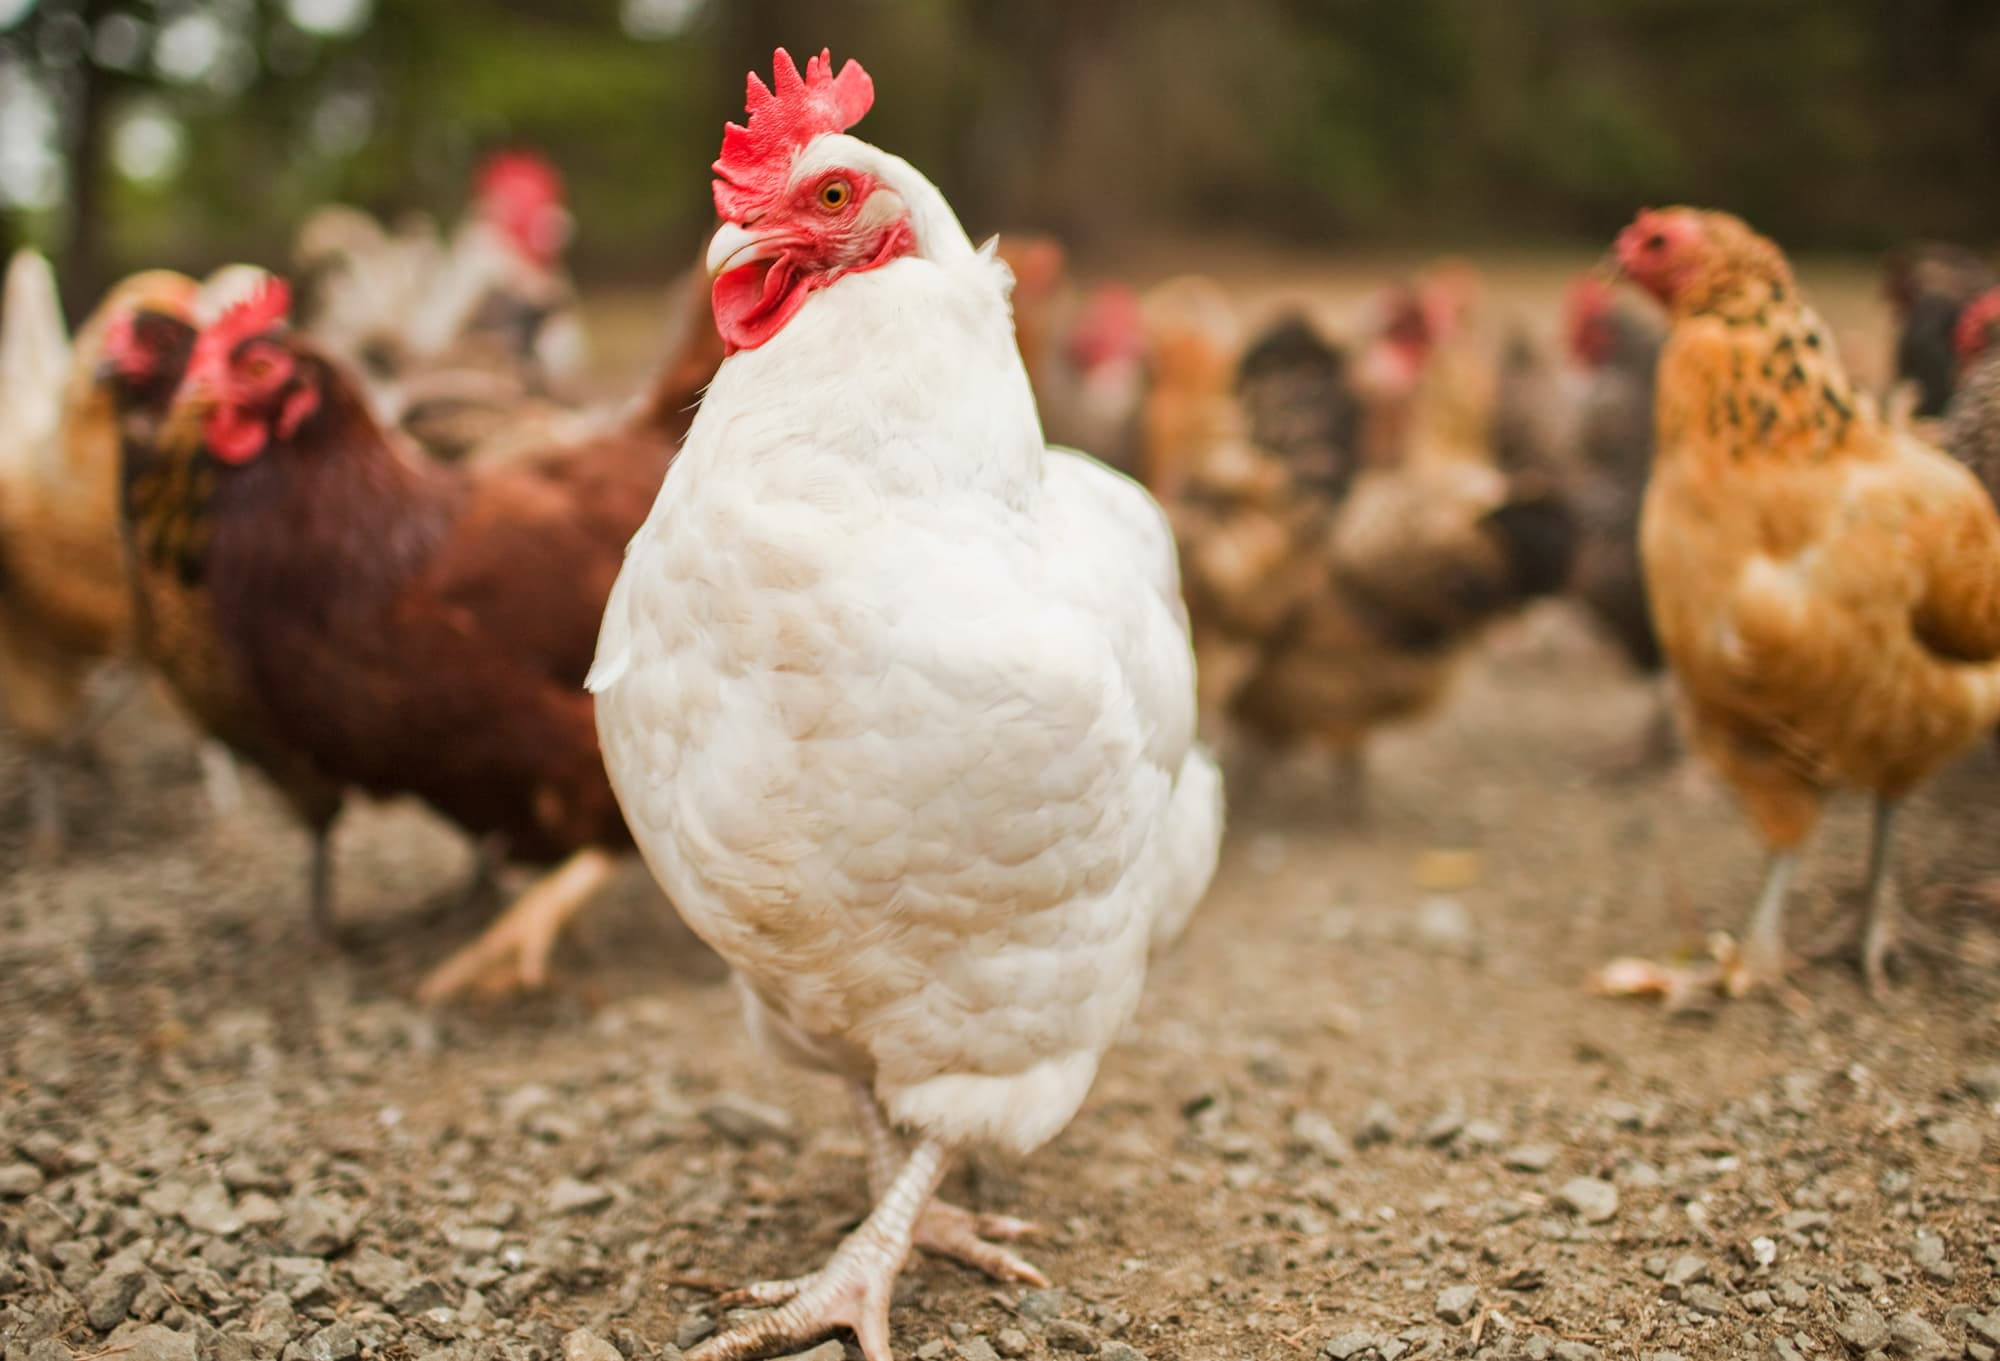 Live chicken pictures